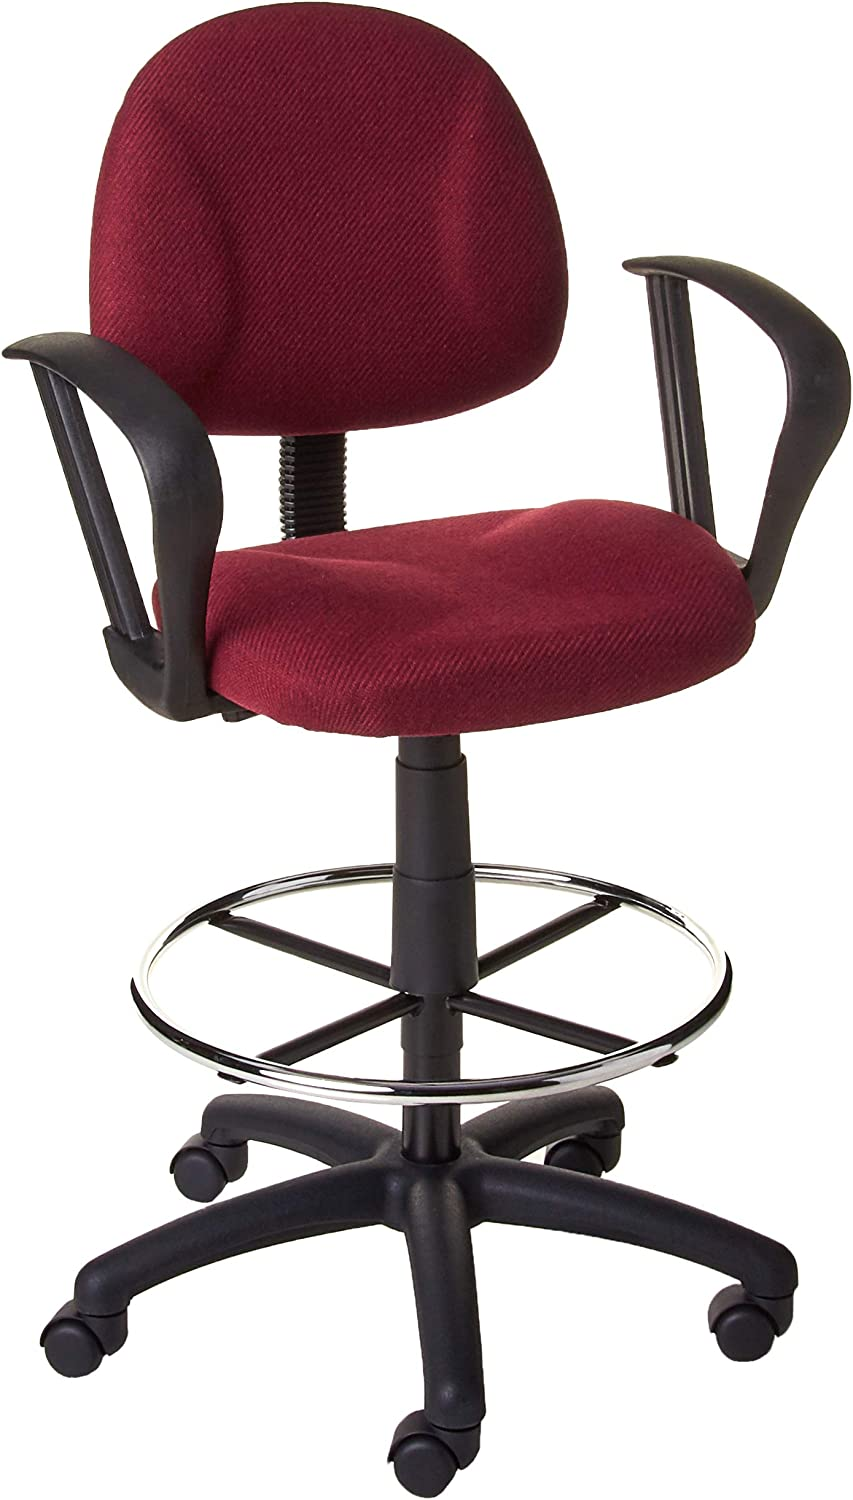 Boss Office Products Ergonomic Works Drafting Chair with Loop Arms in Burgundy